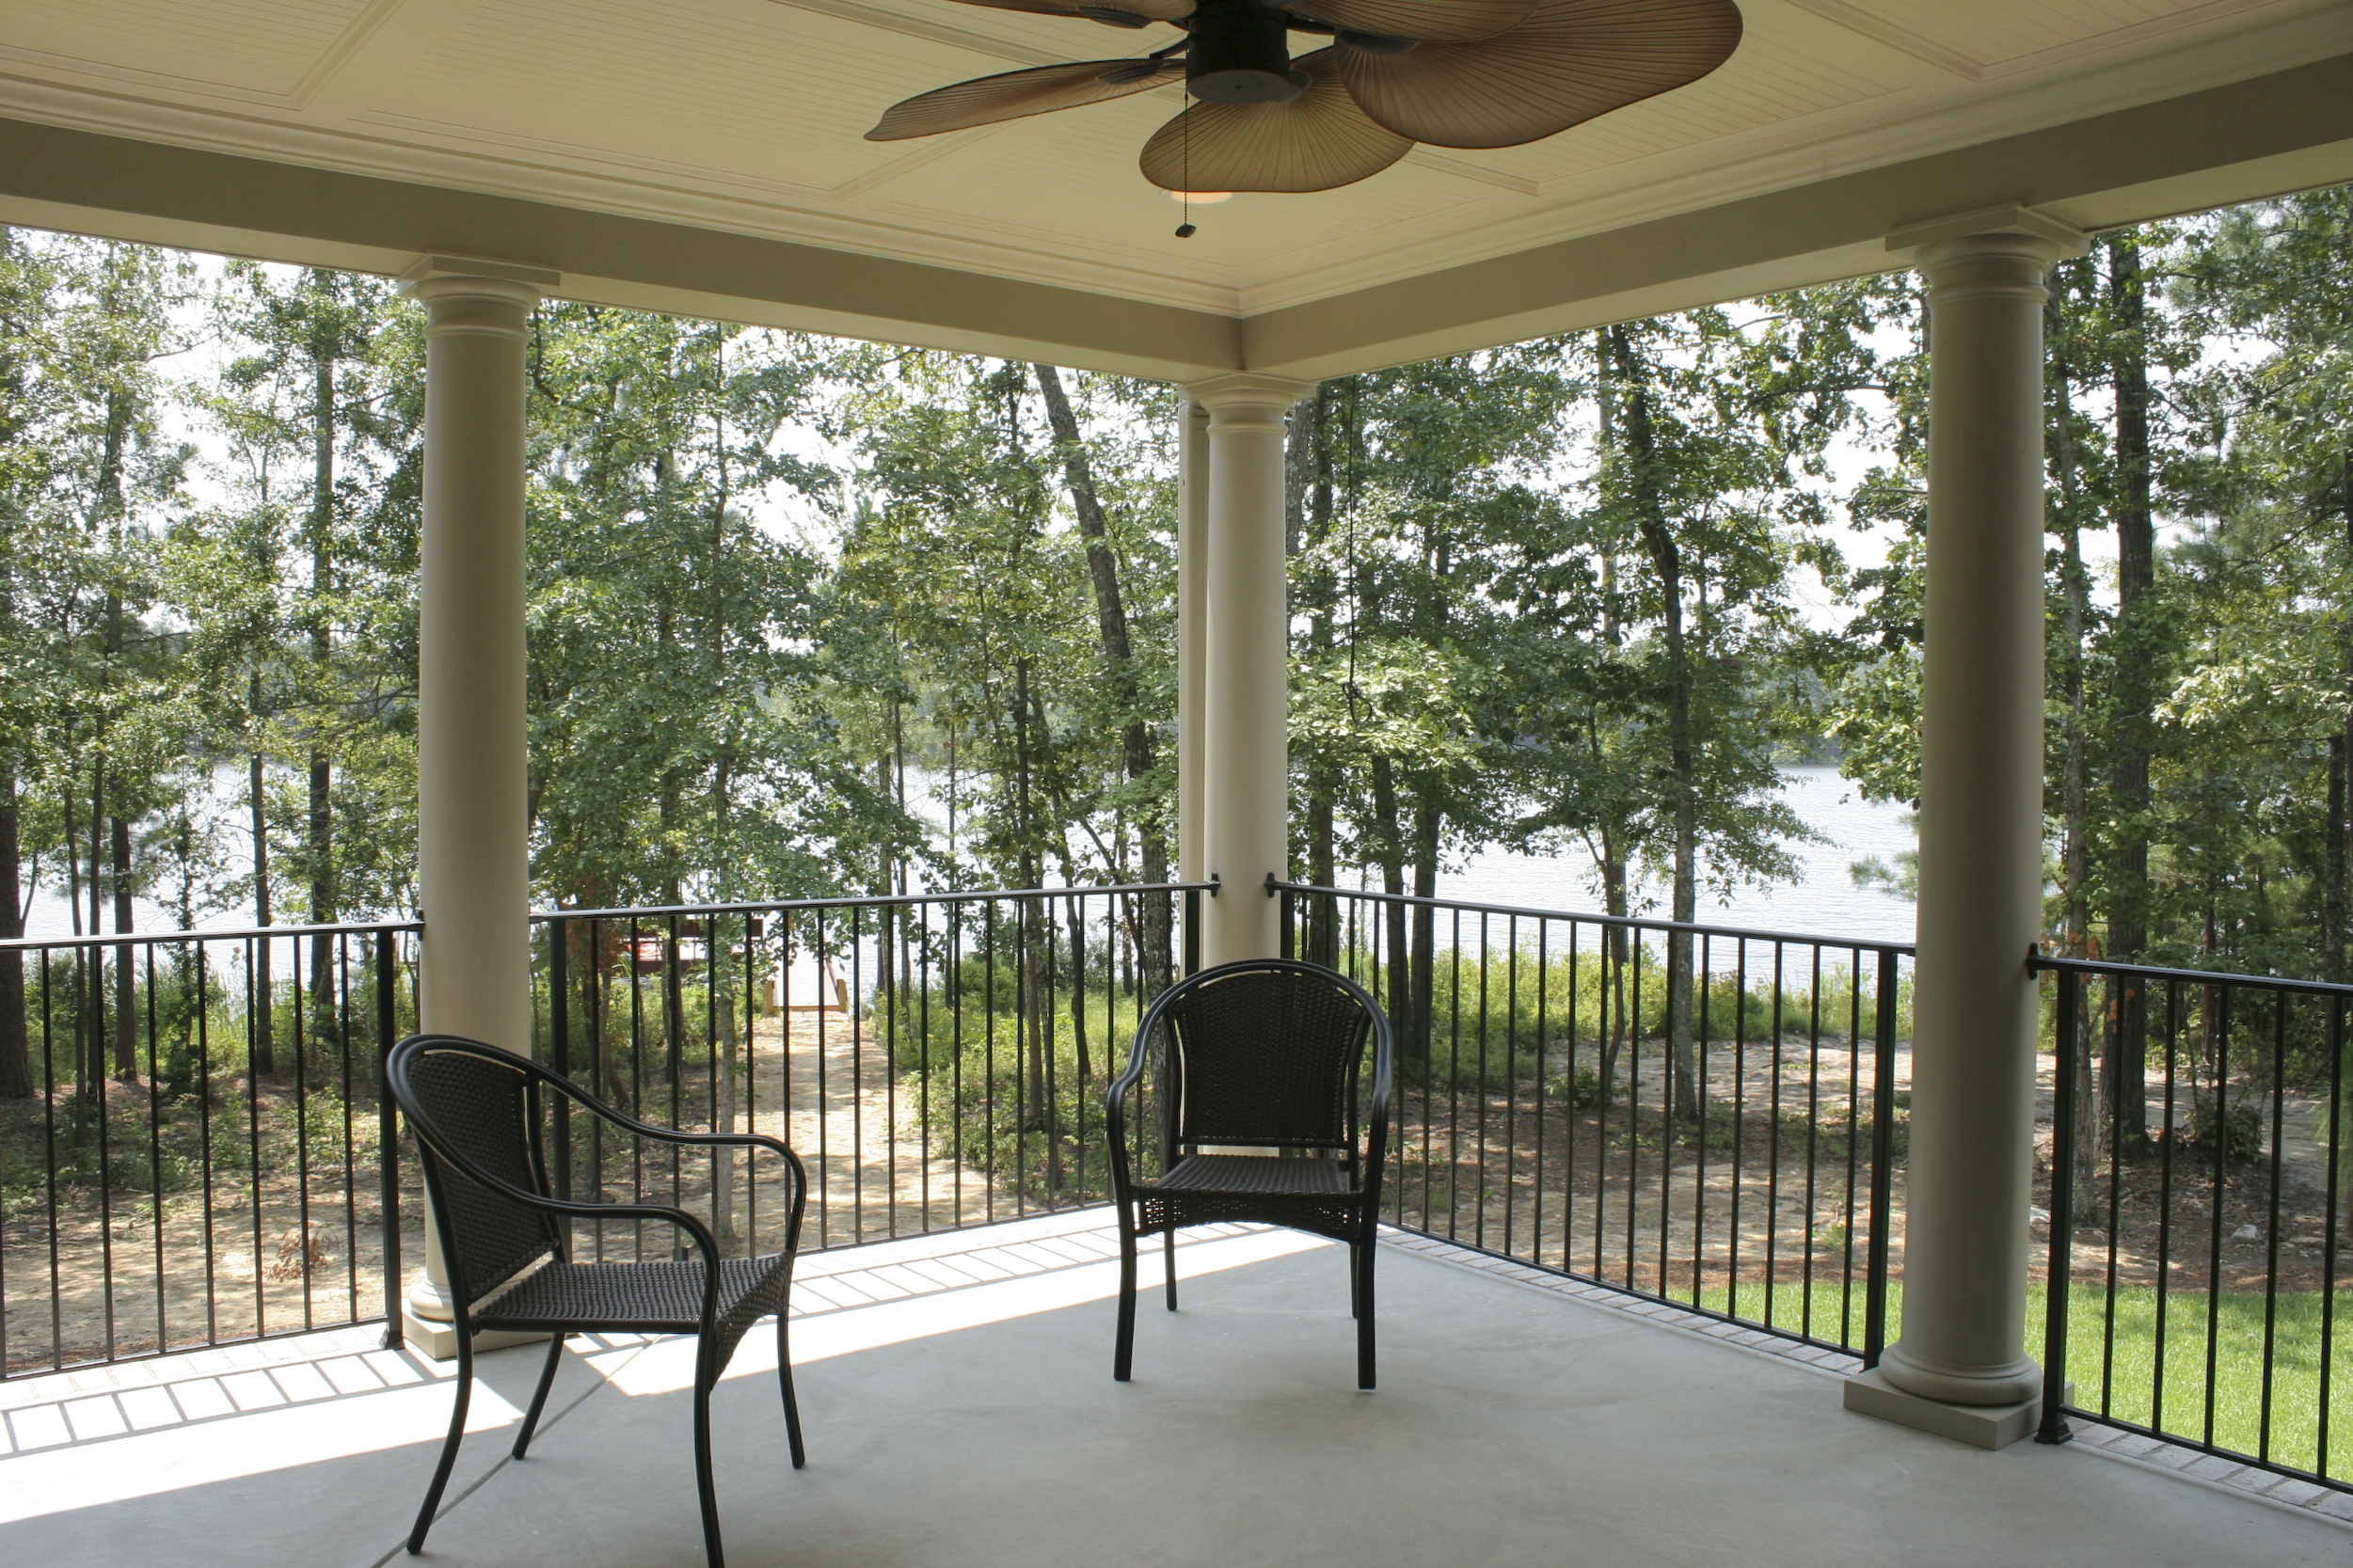 09-Covered-porch